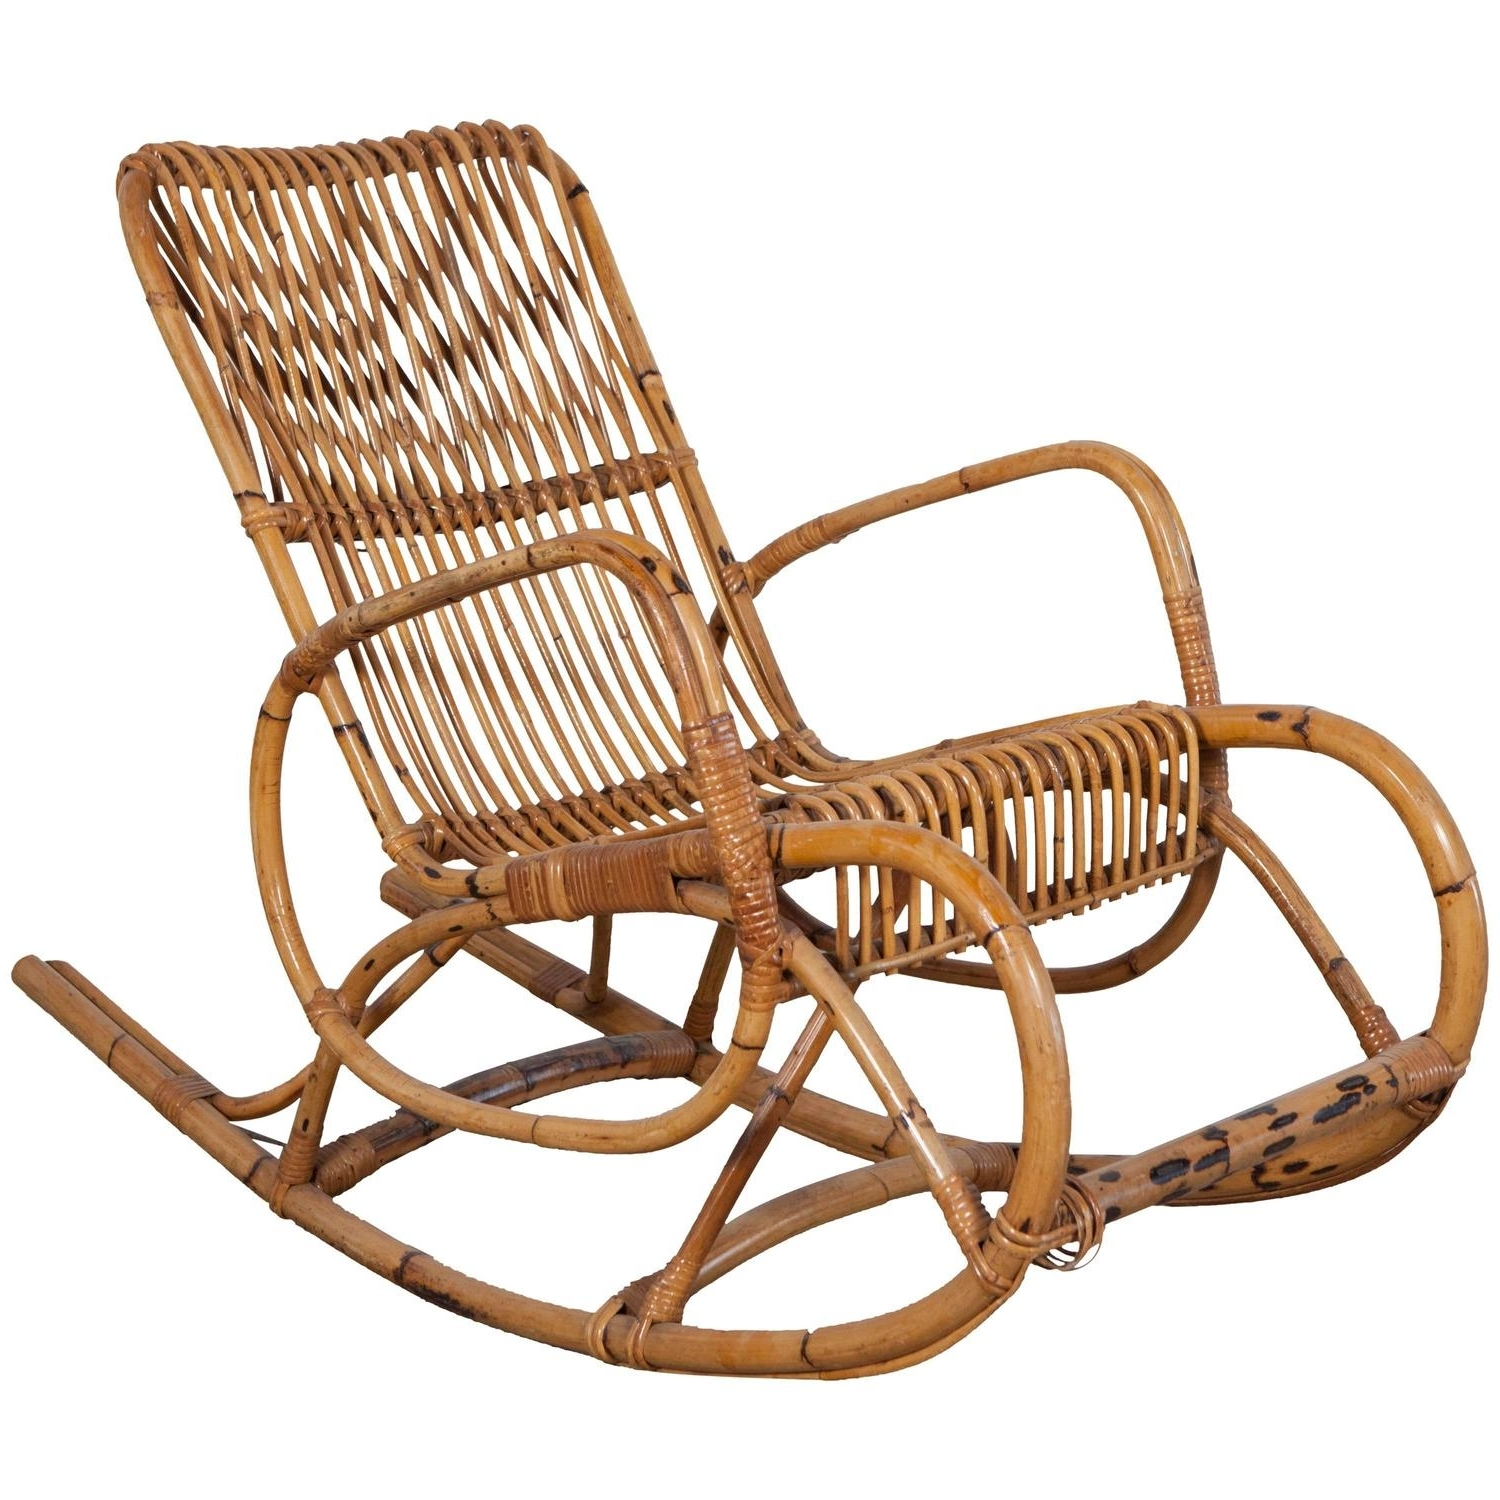 2018 Vintage Italian Bamboo Rocking Chair With Square Arms At 1Stdibs Regarding Antique Rocking Chairs (View 2 of 20)